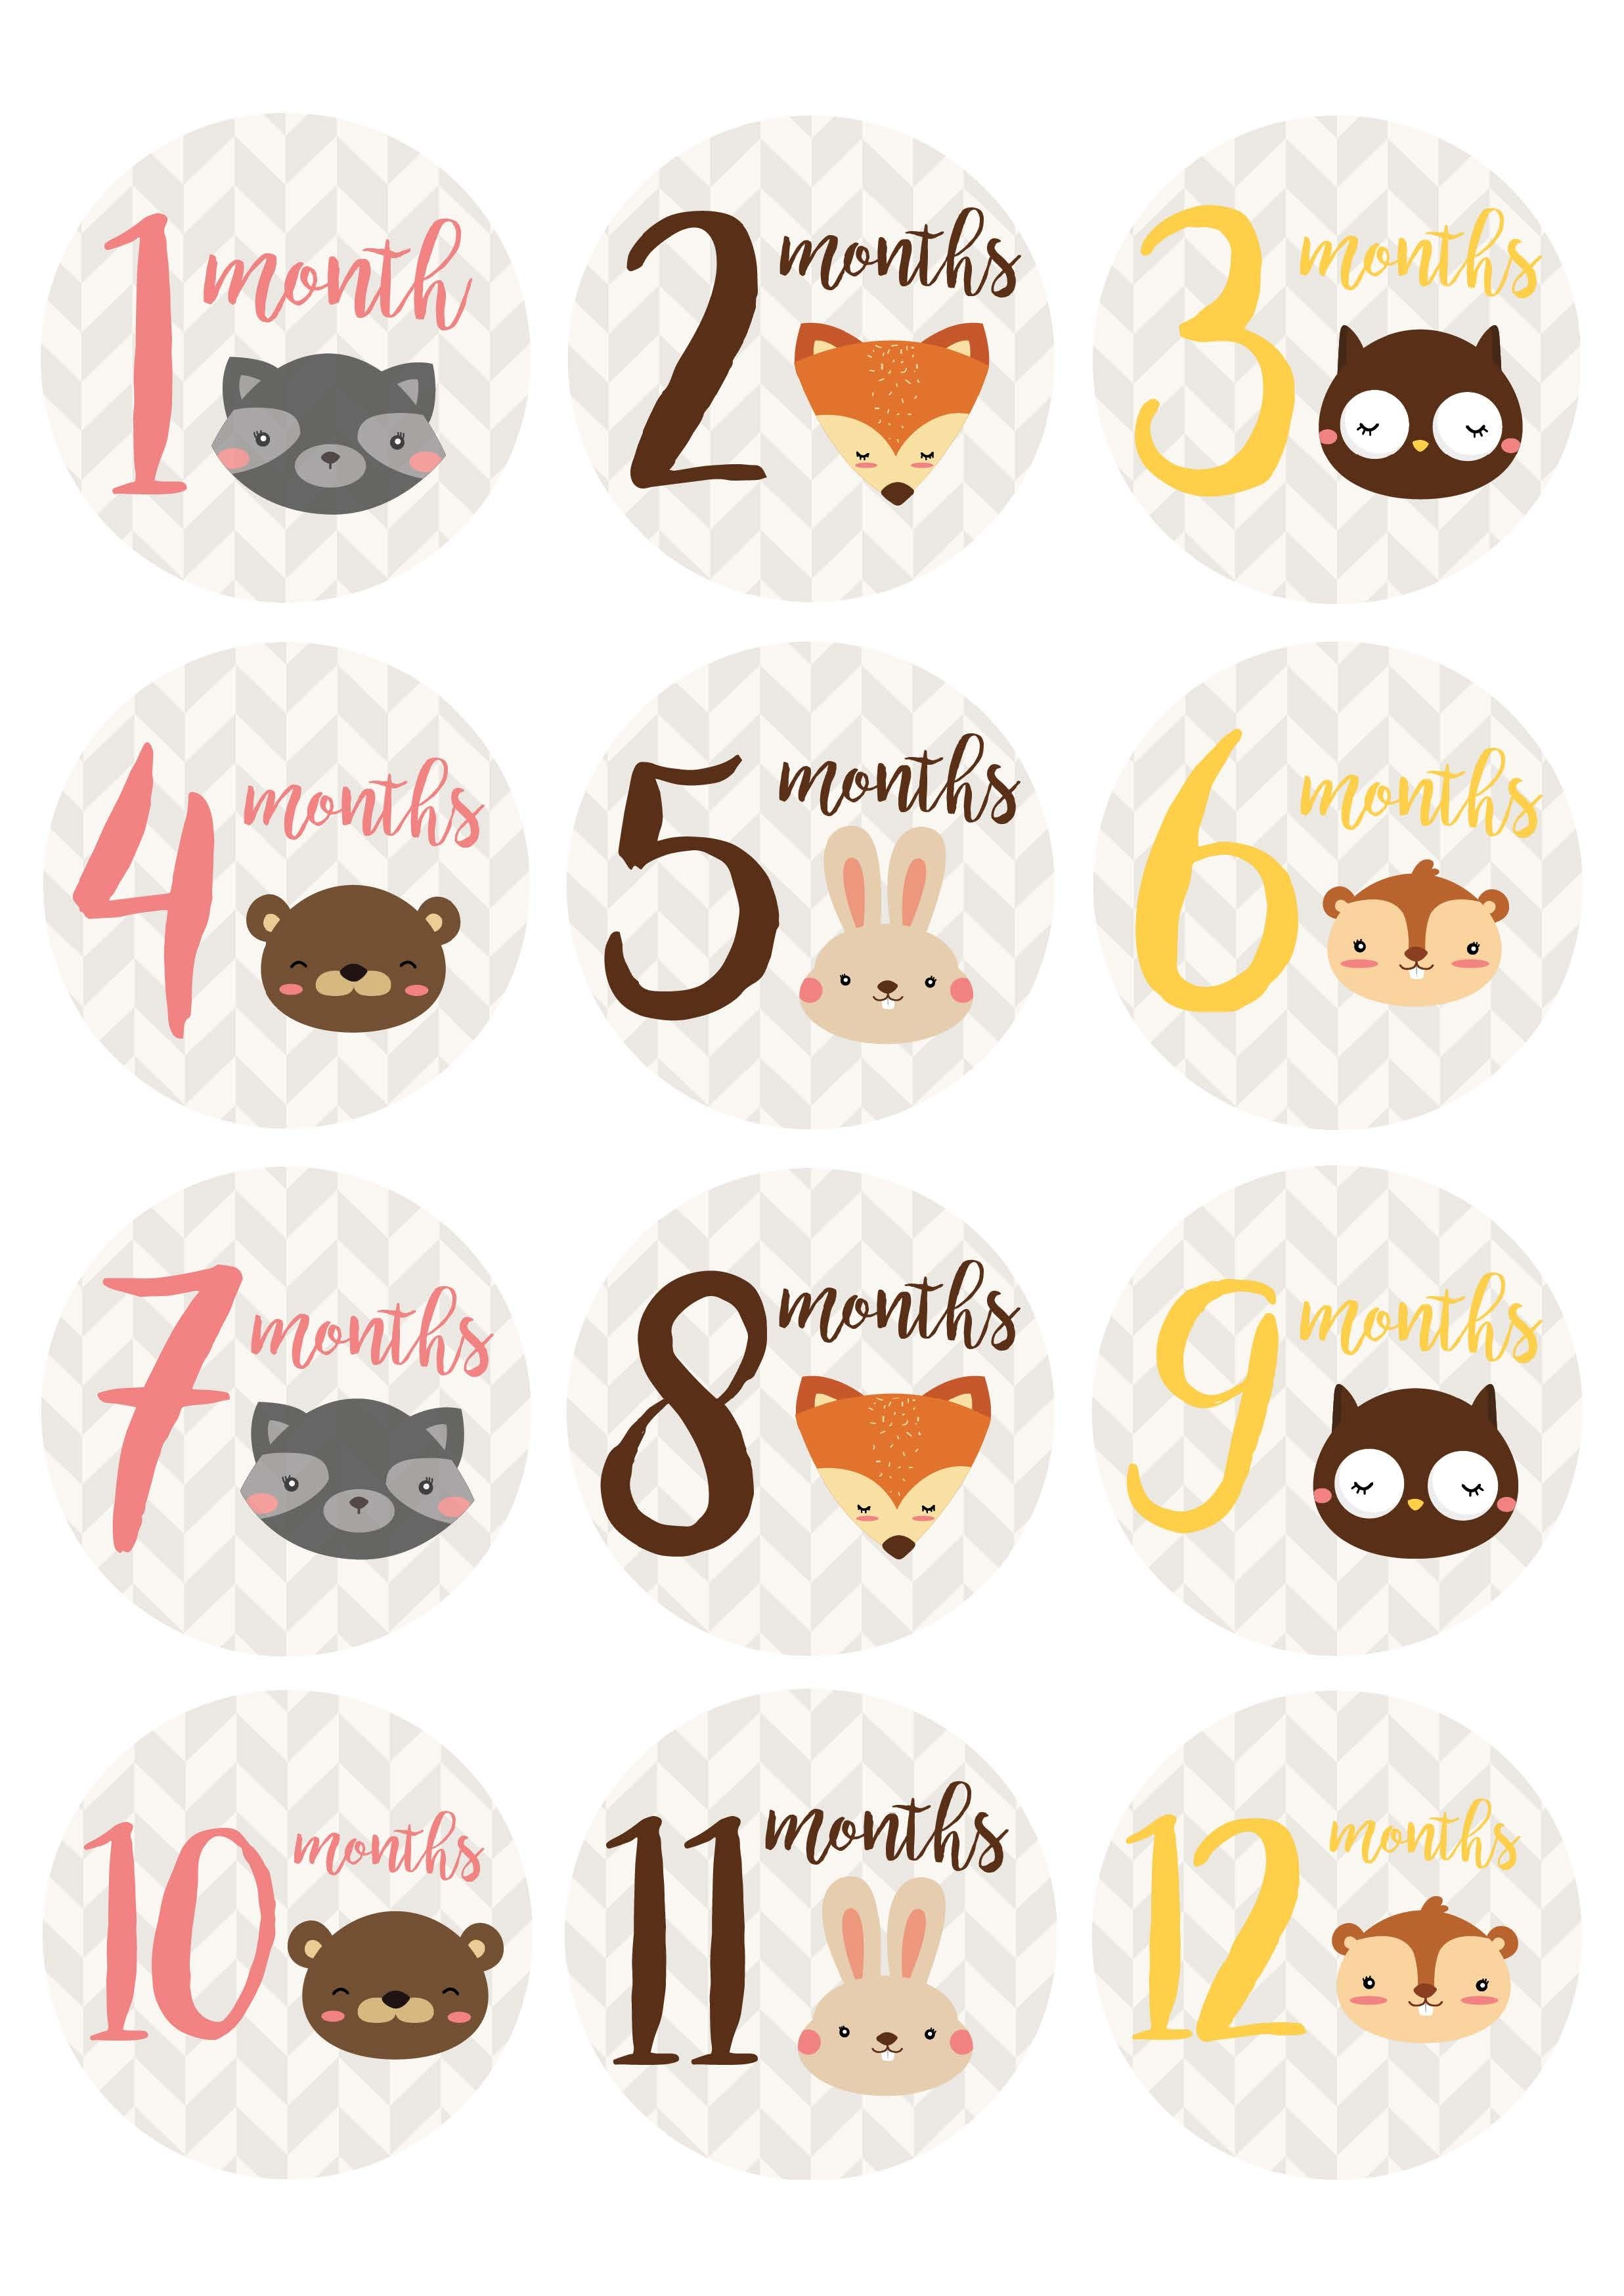 Free* Printable Baby Milestone Stickers From Countryside Amish - Free Printable Baby Month Stickers